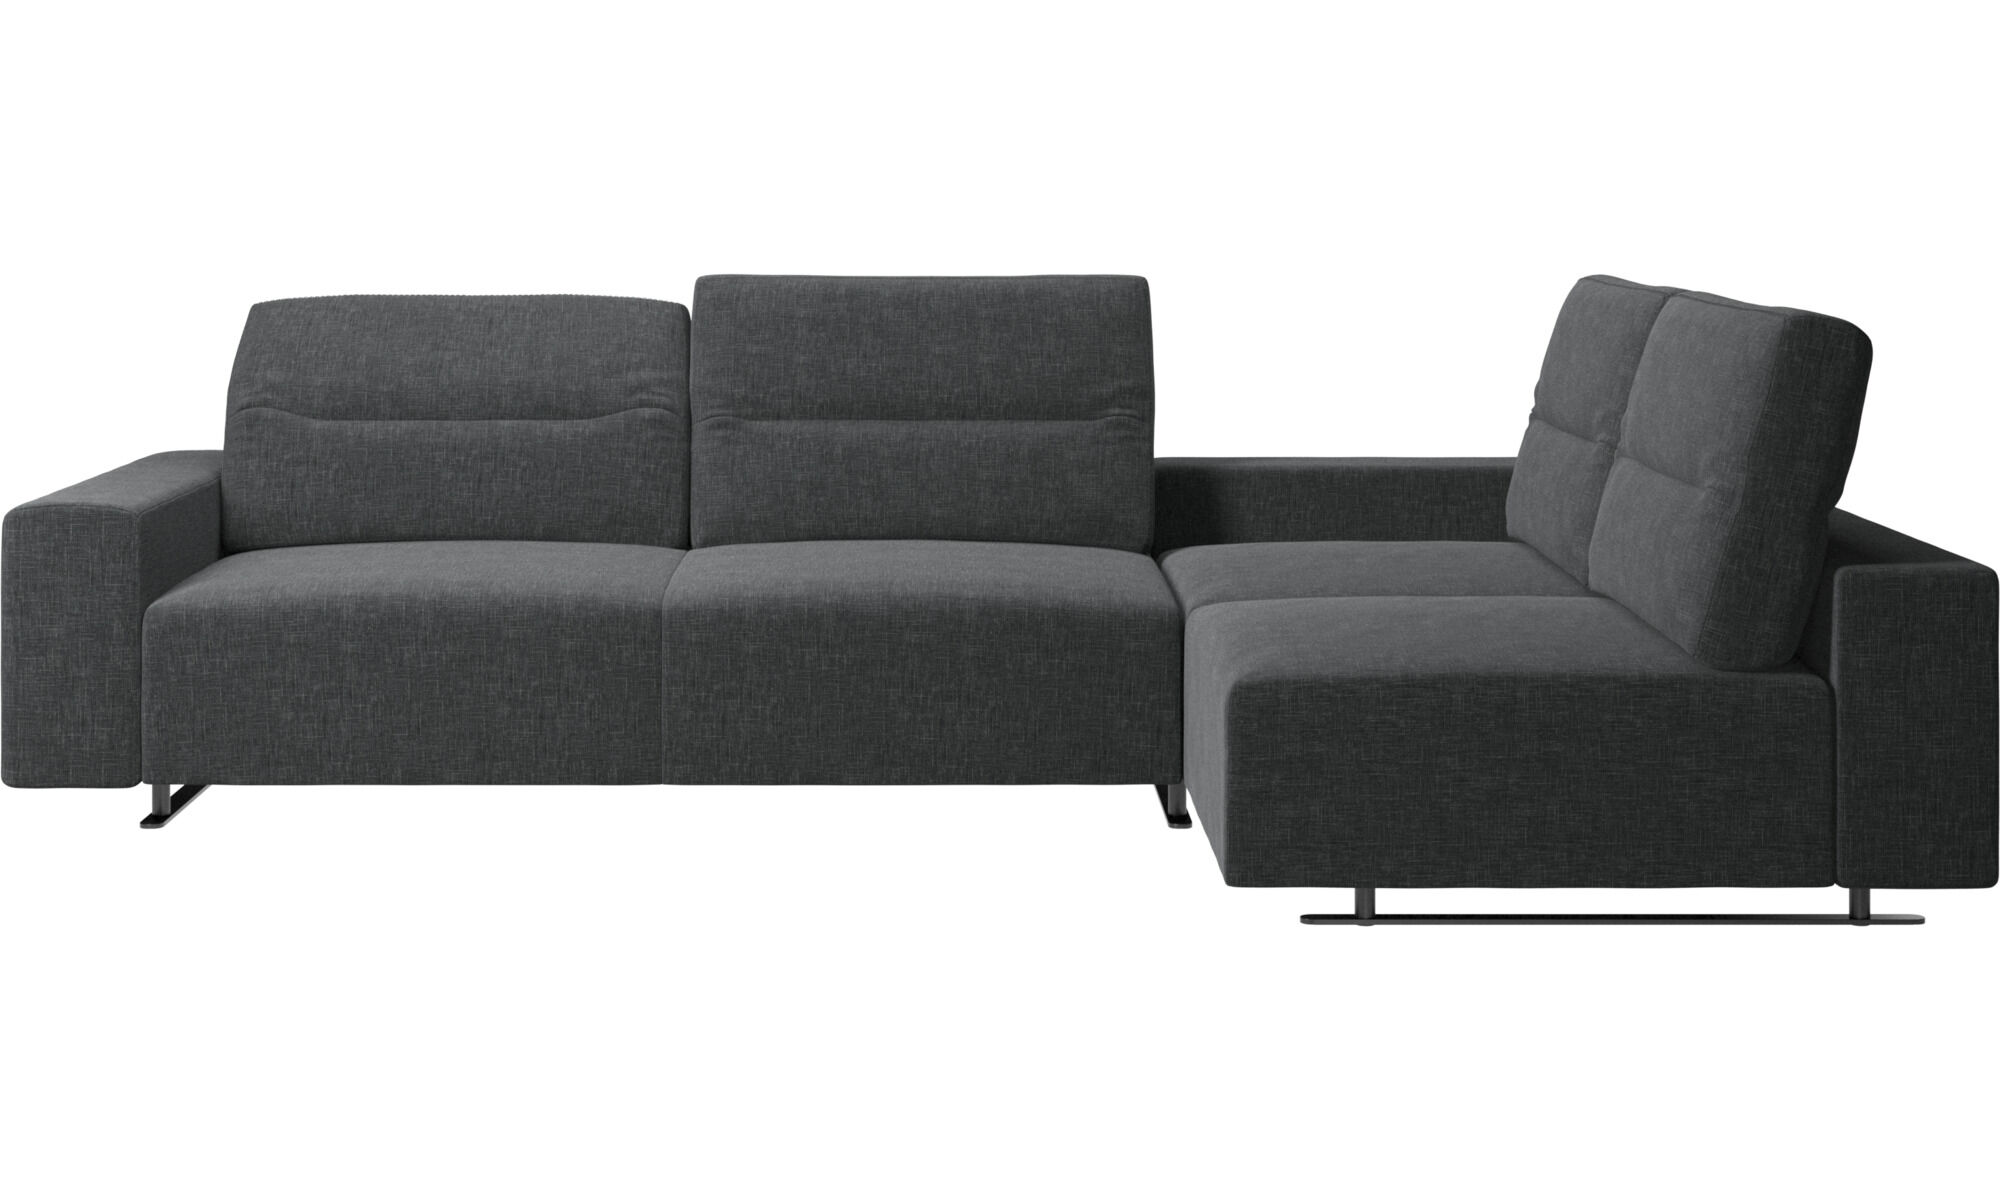 Corner Sofas   Hampton Corner Sofa With Adjustable Back And Storage On Left  Side   Gray ...